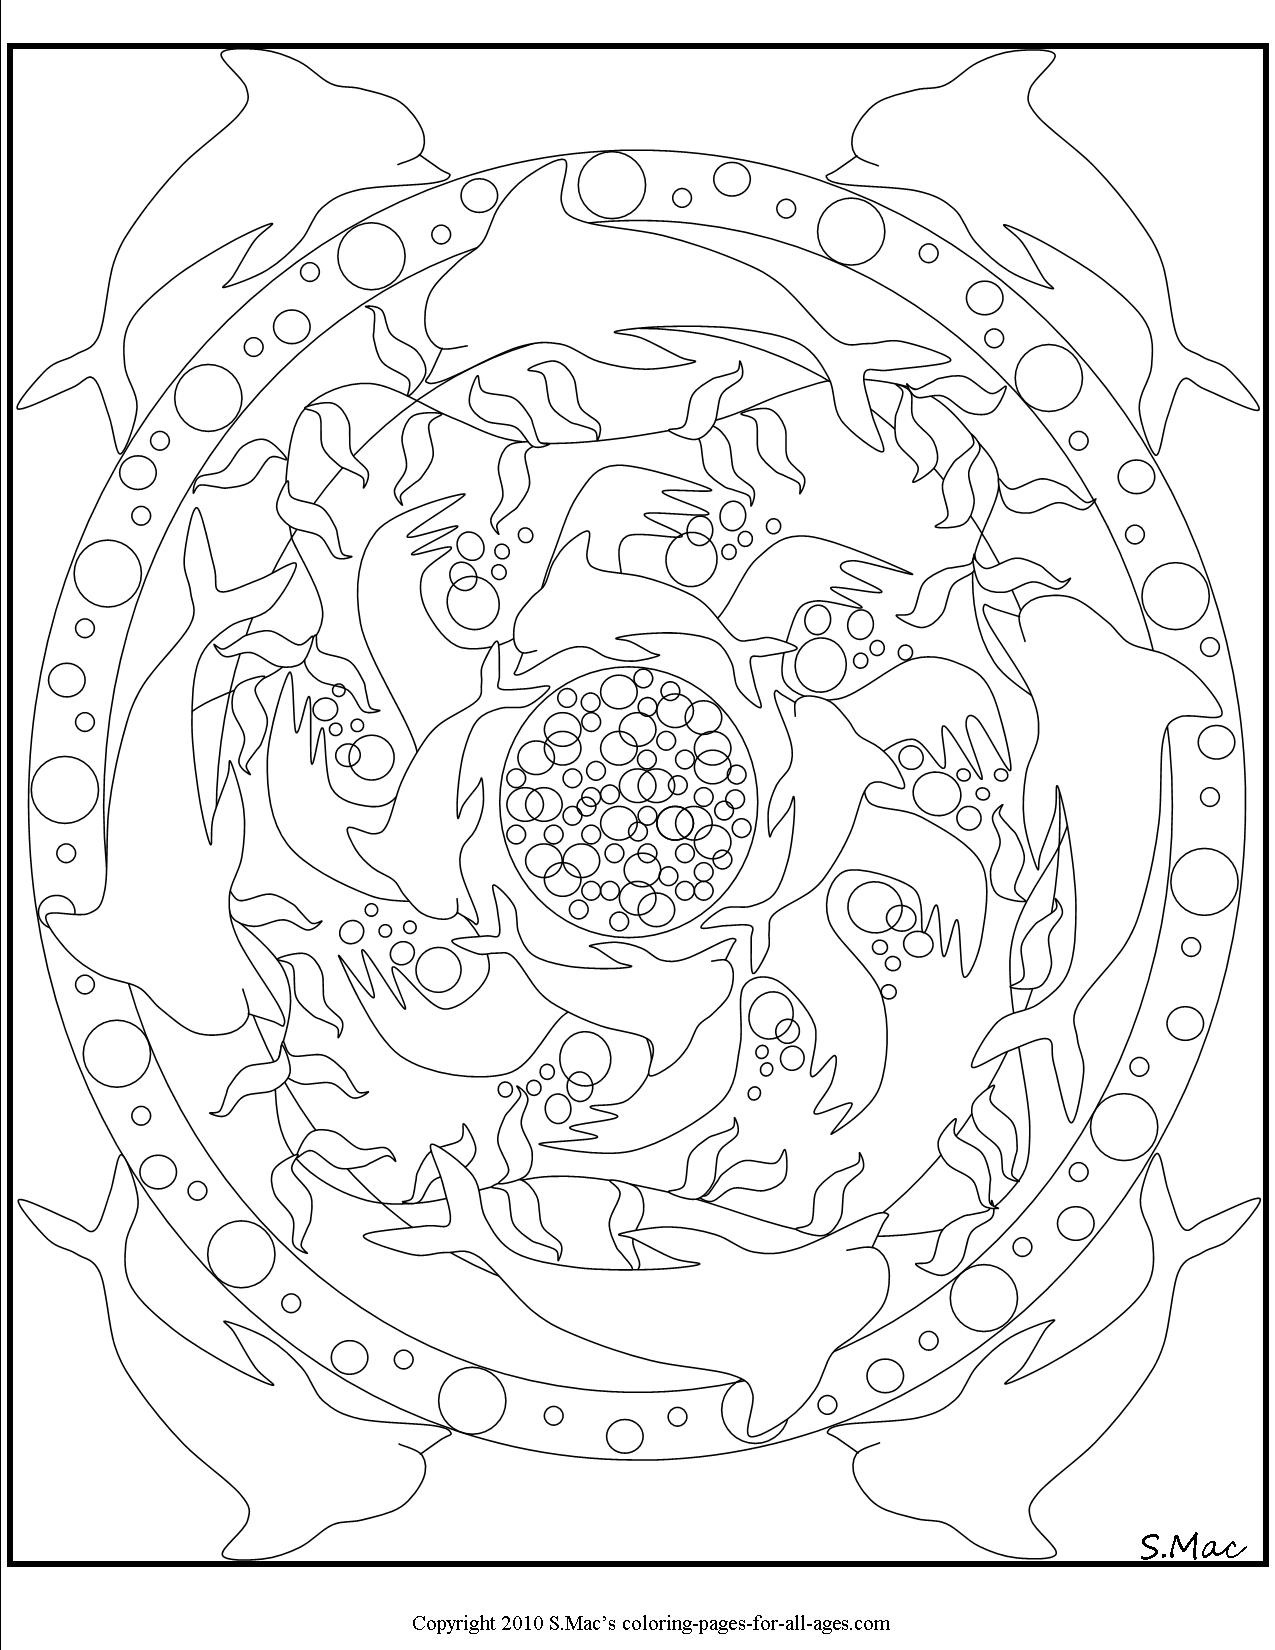 Mandala Coloring Pages S Mac S Place To Be